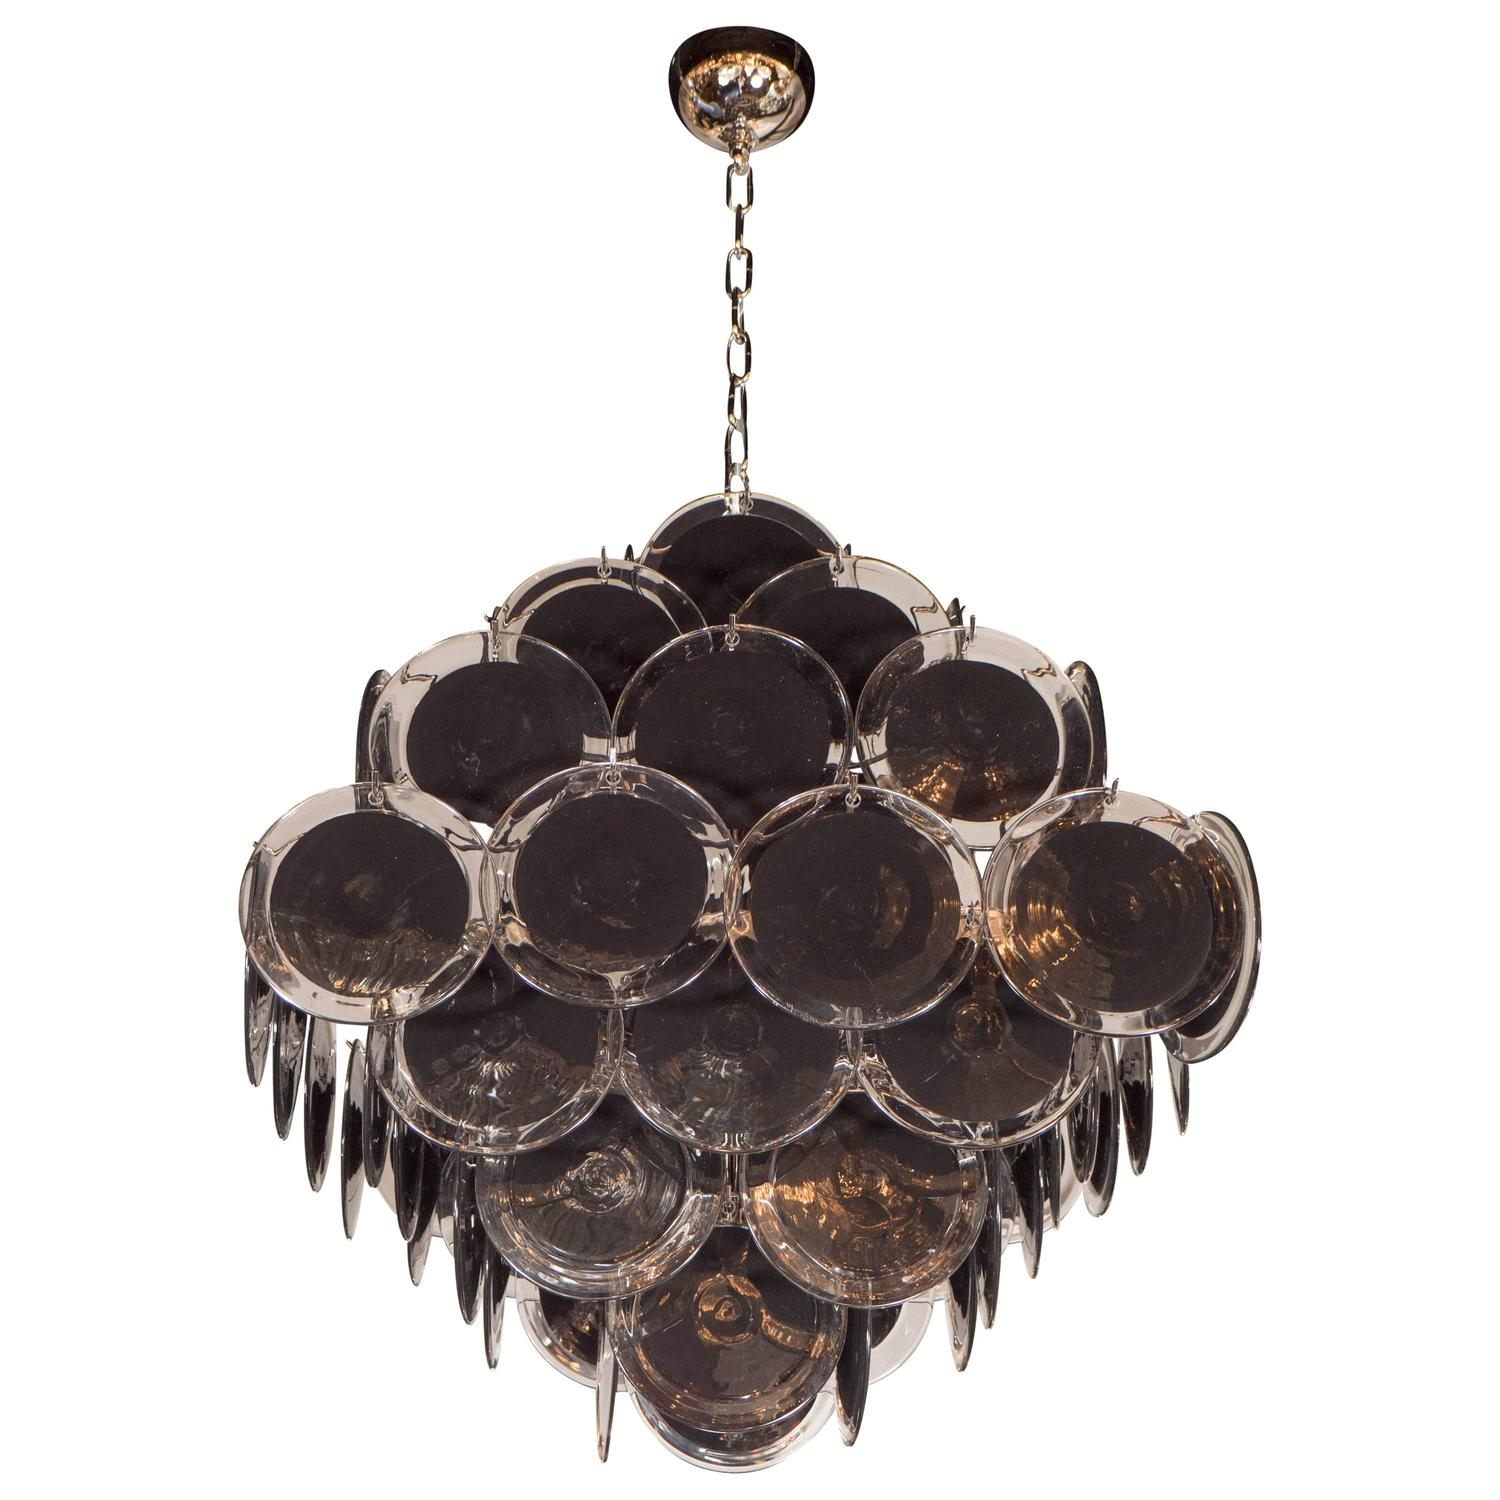 Ultra Chic Modernist Diamond Shaped Black Murano Glass Chandelier Intended For Black Glass Chandelier (Image 14 of 15)